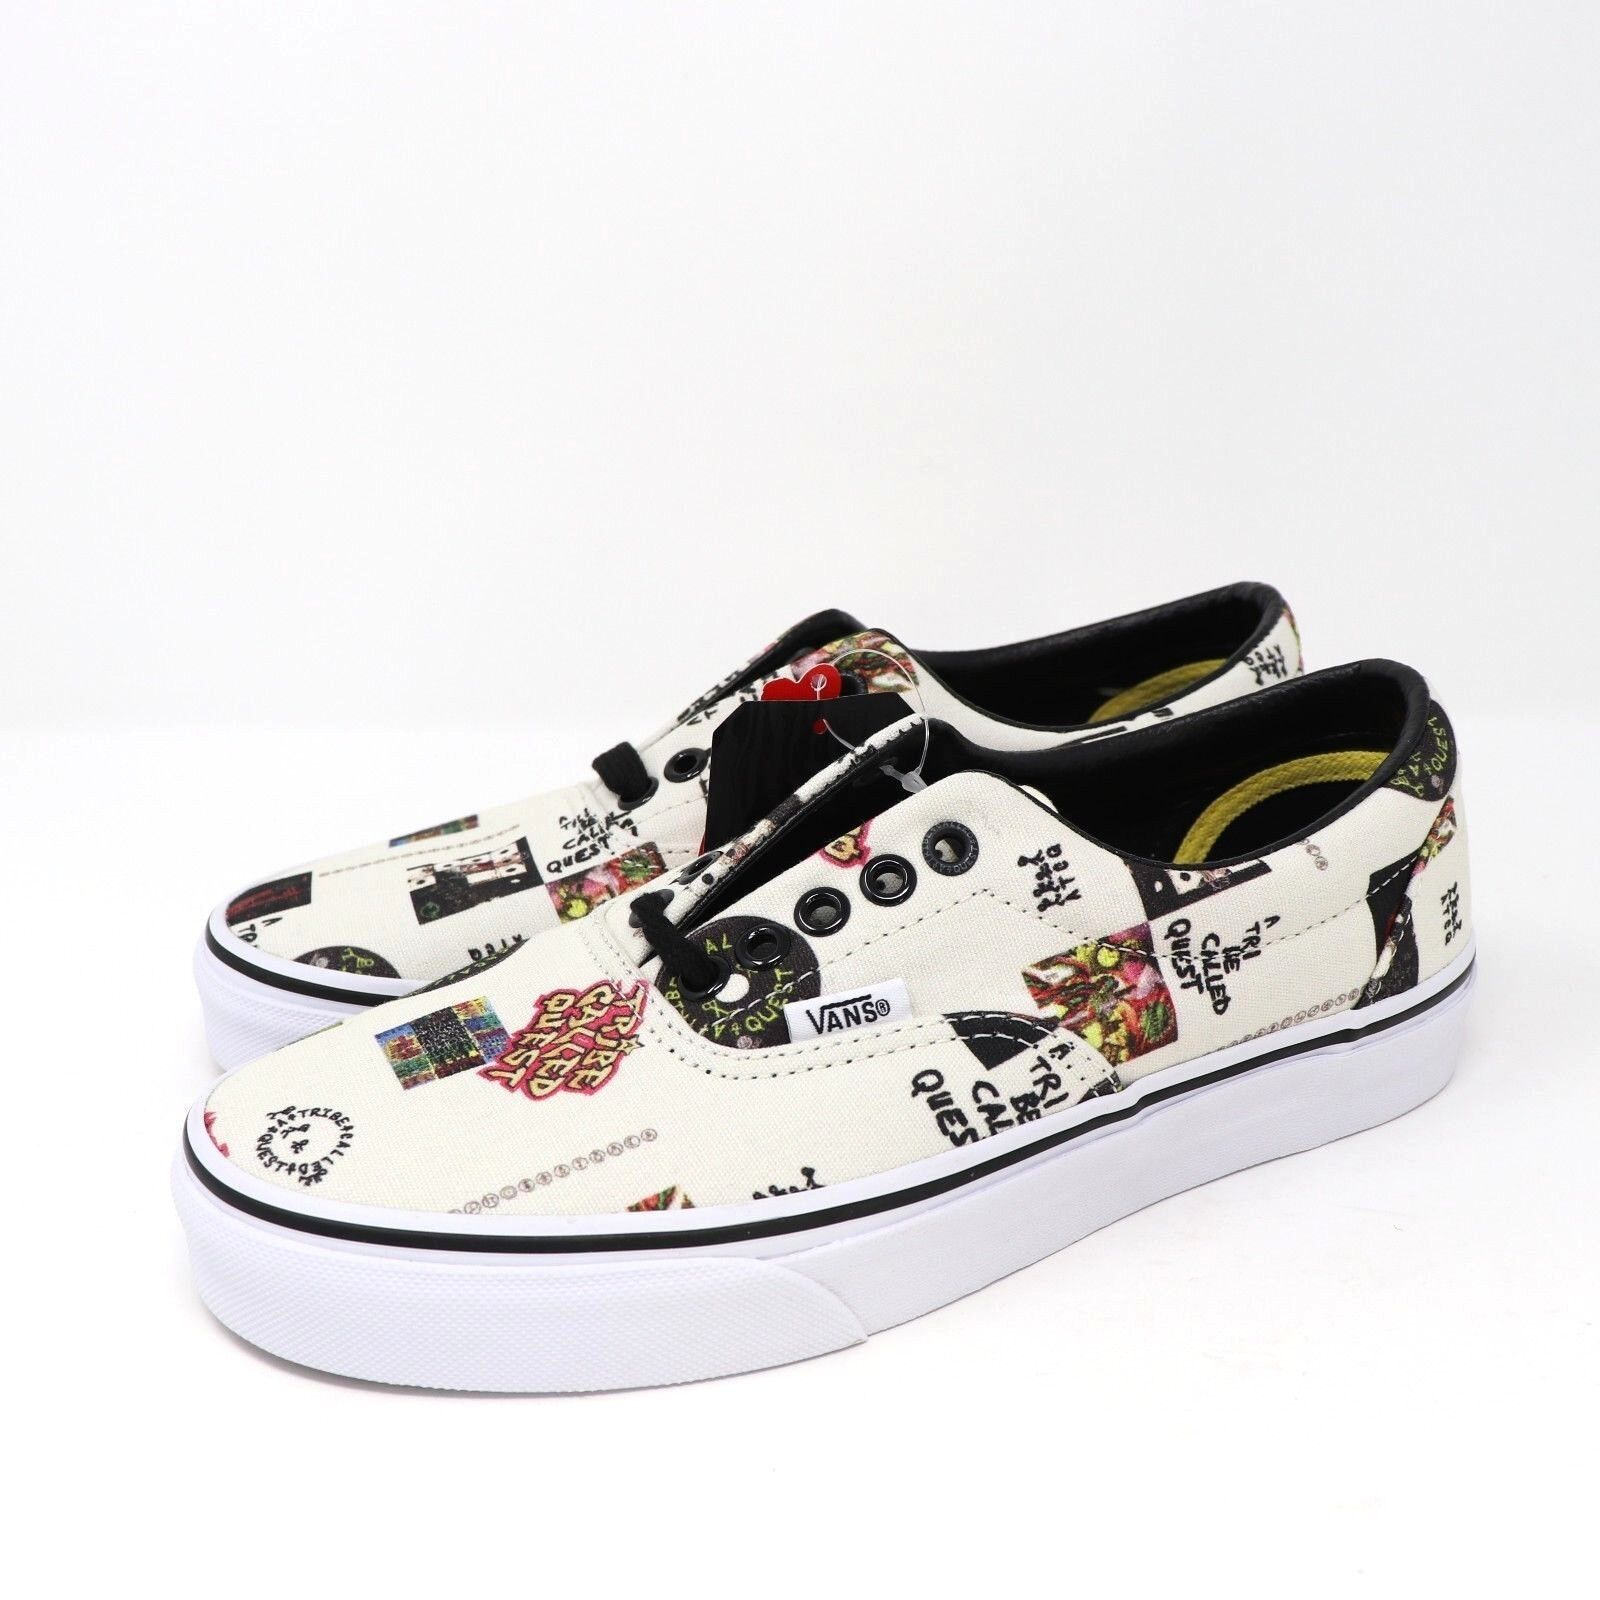 Vans Era X ATCQ Print A Tribe Called Quest Limited Edition Uomo's Shoes Size 6.5